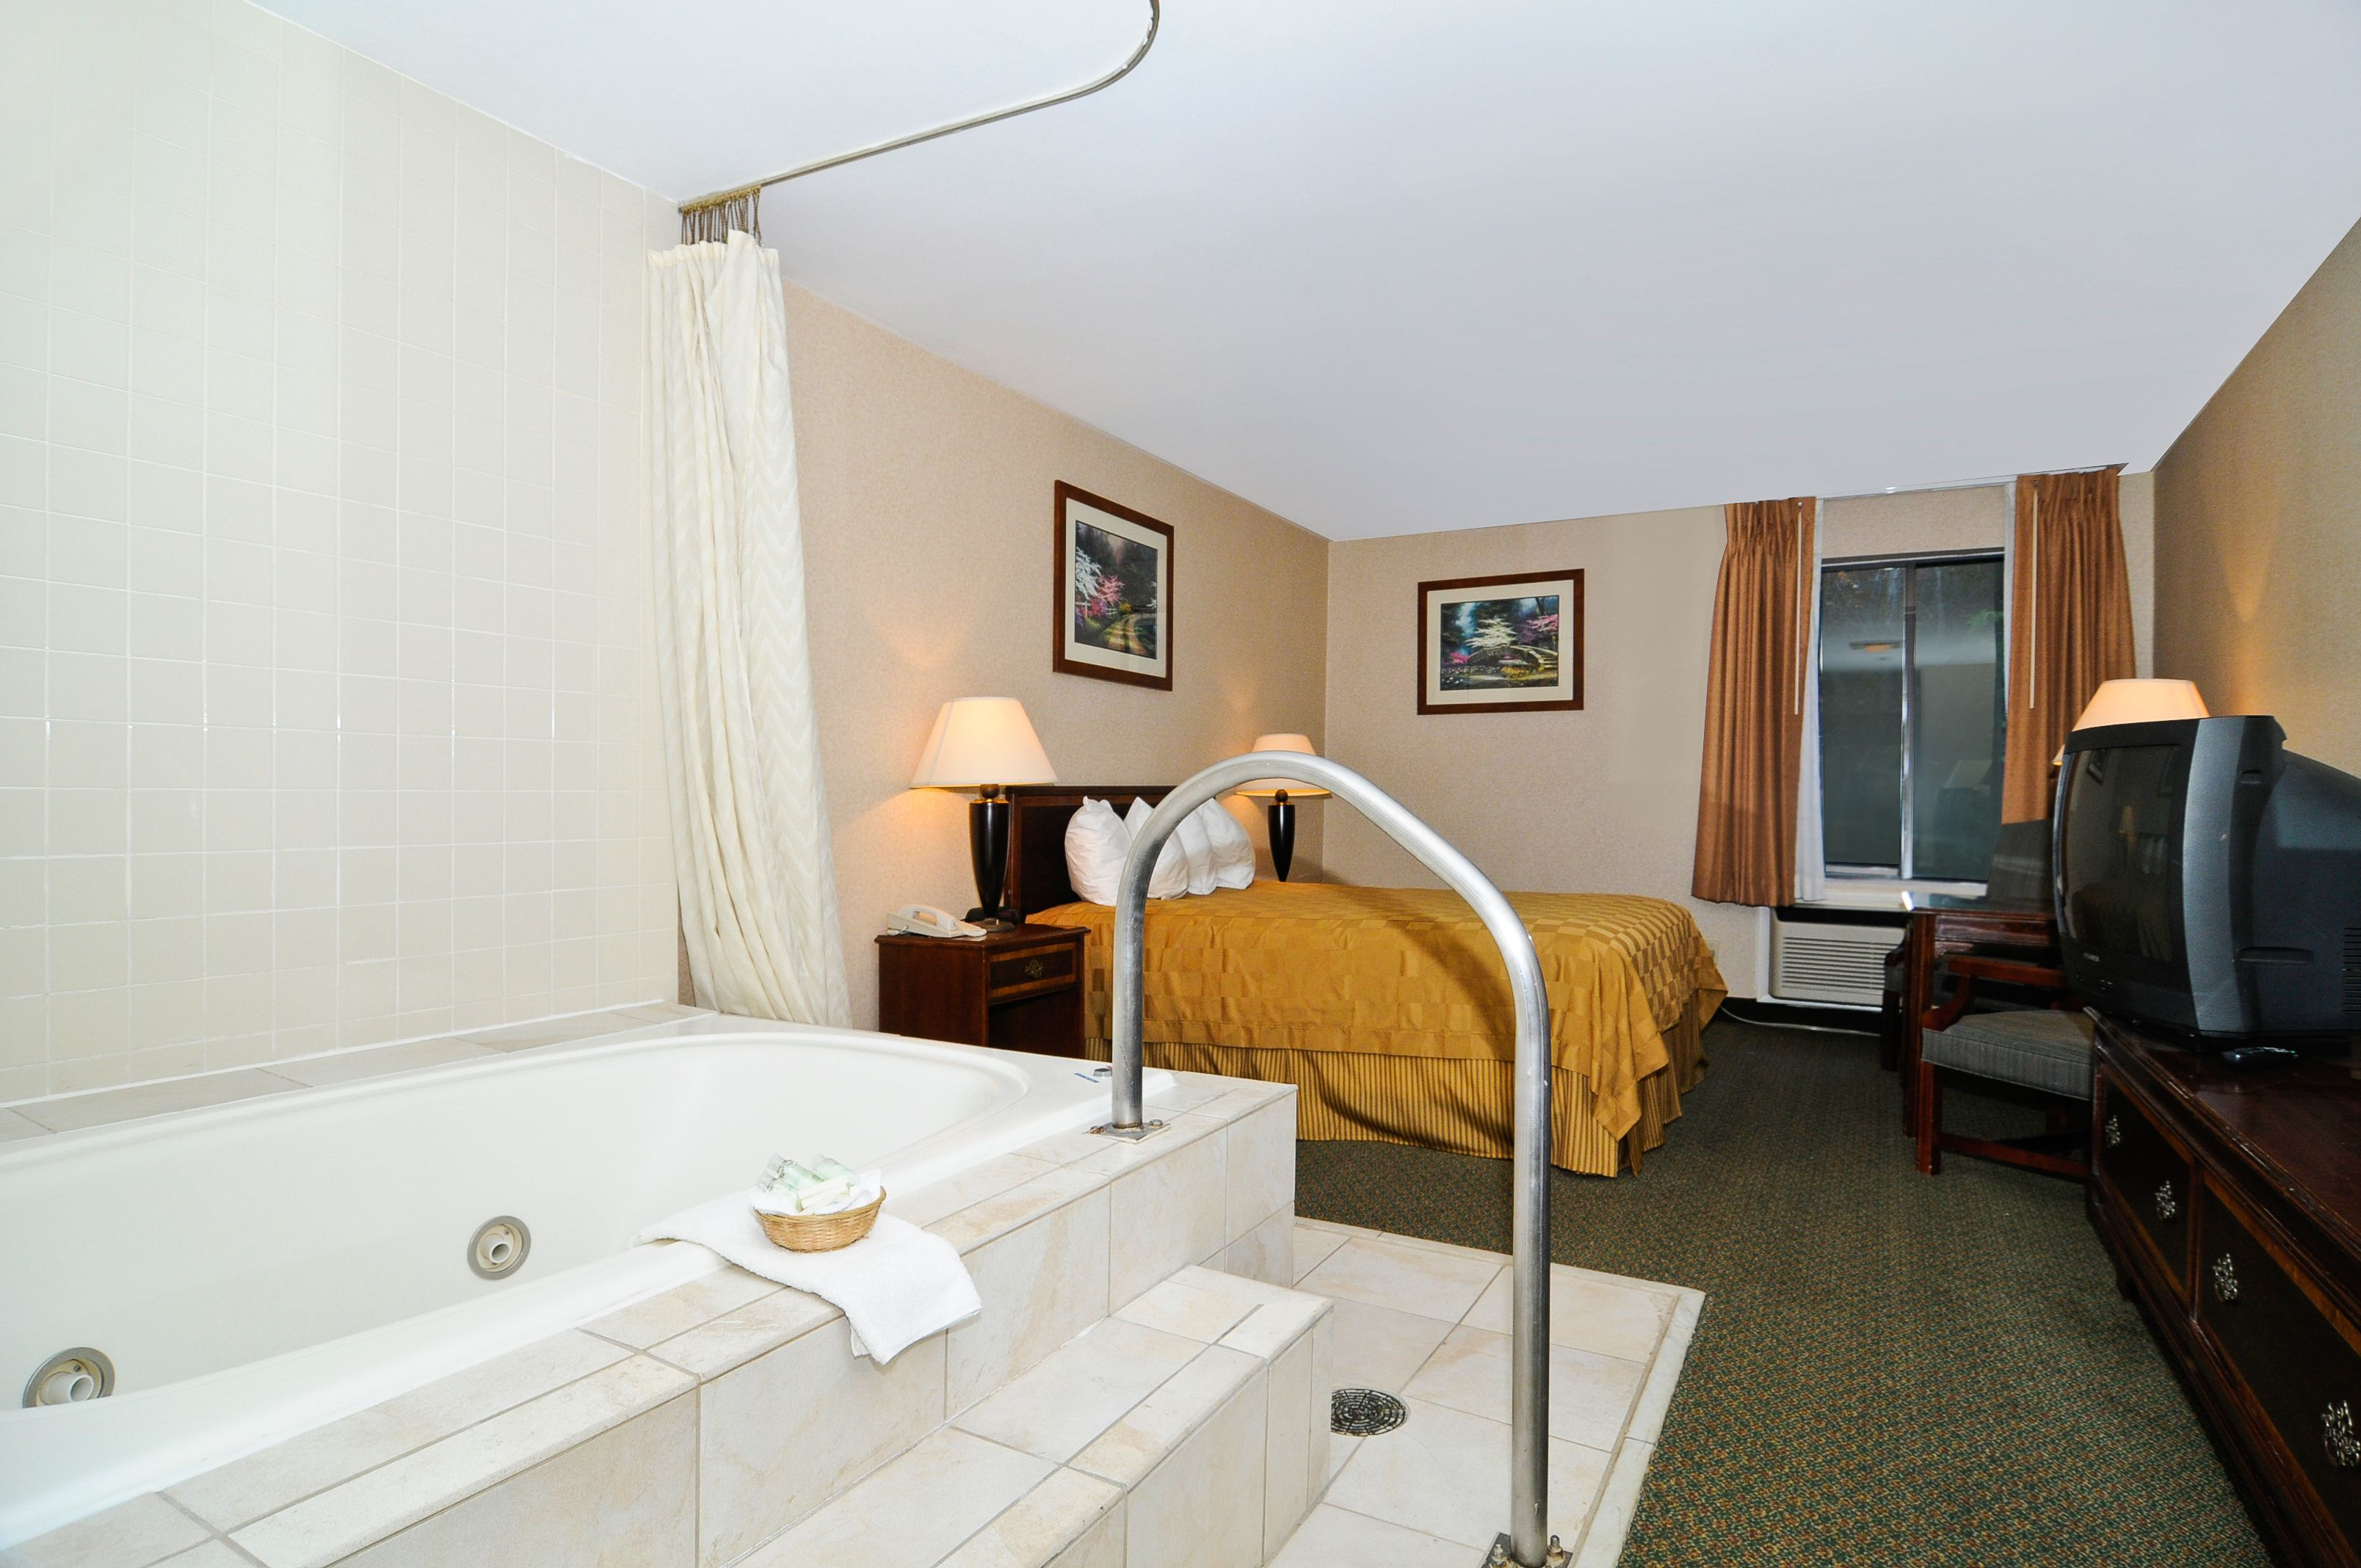 Enjoy Exceptional Lodging At The Best Western Manas A Virginia Hotel That Offers Free Breakfast Ious Accommodations Near Washington Dc